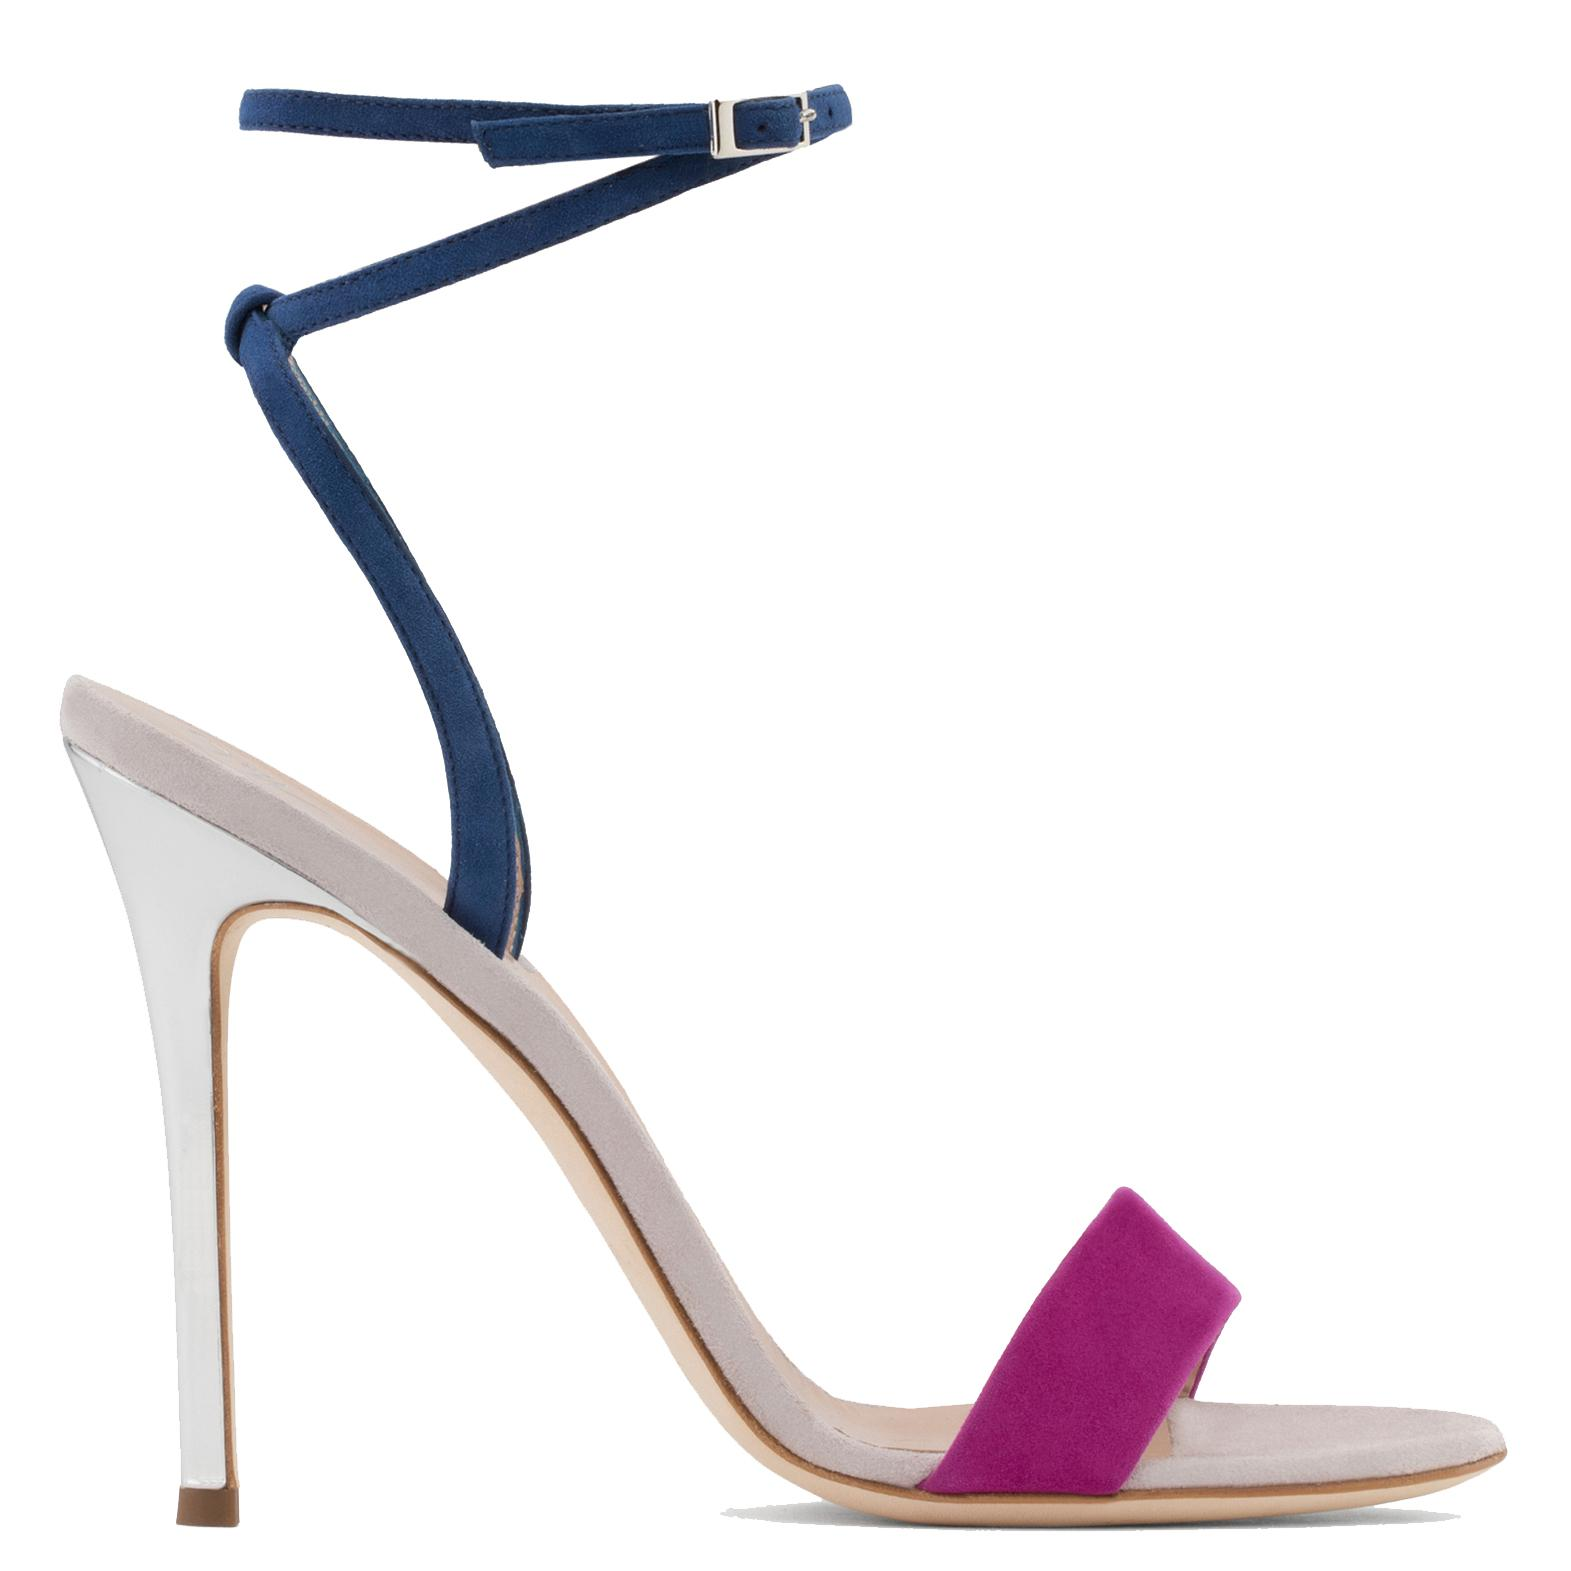 Giuseppe Zanotti Blue and purple suede sandal GEORGINA Pictures For Sale Cheap Real Eastbay Buy Cheap Footaction nNJ64CKm